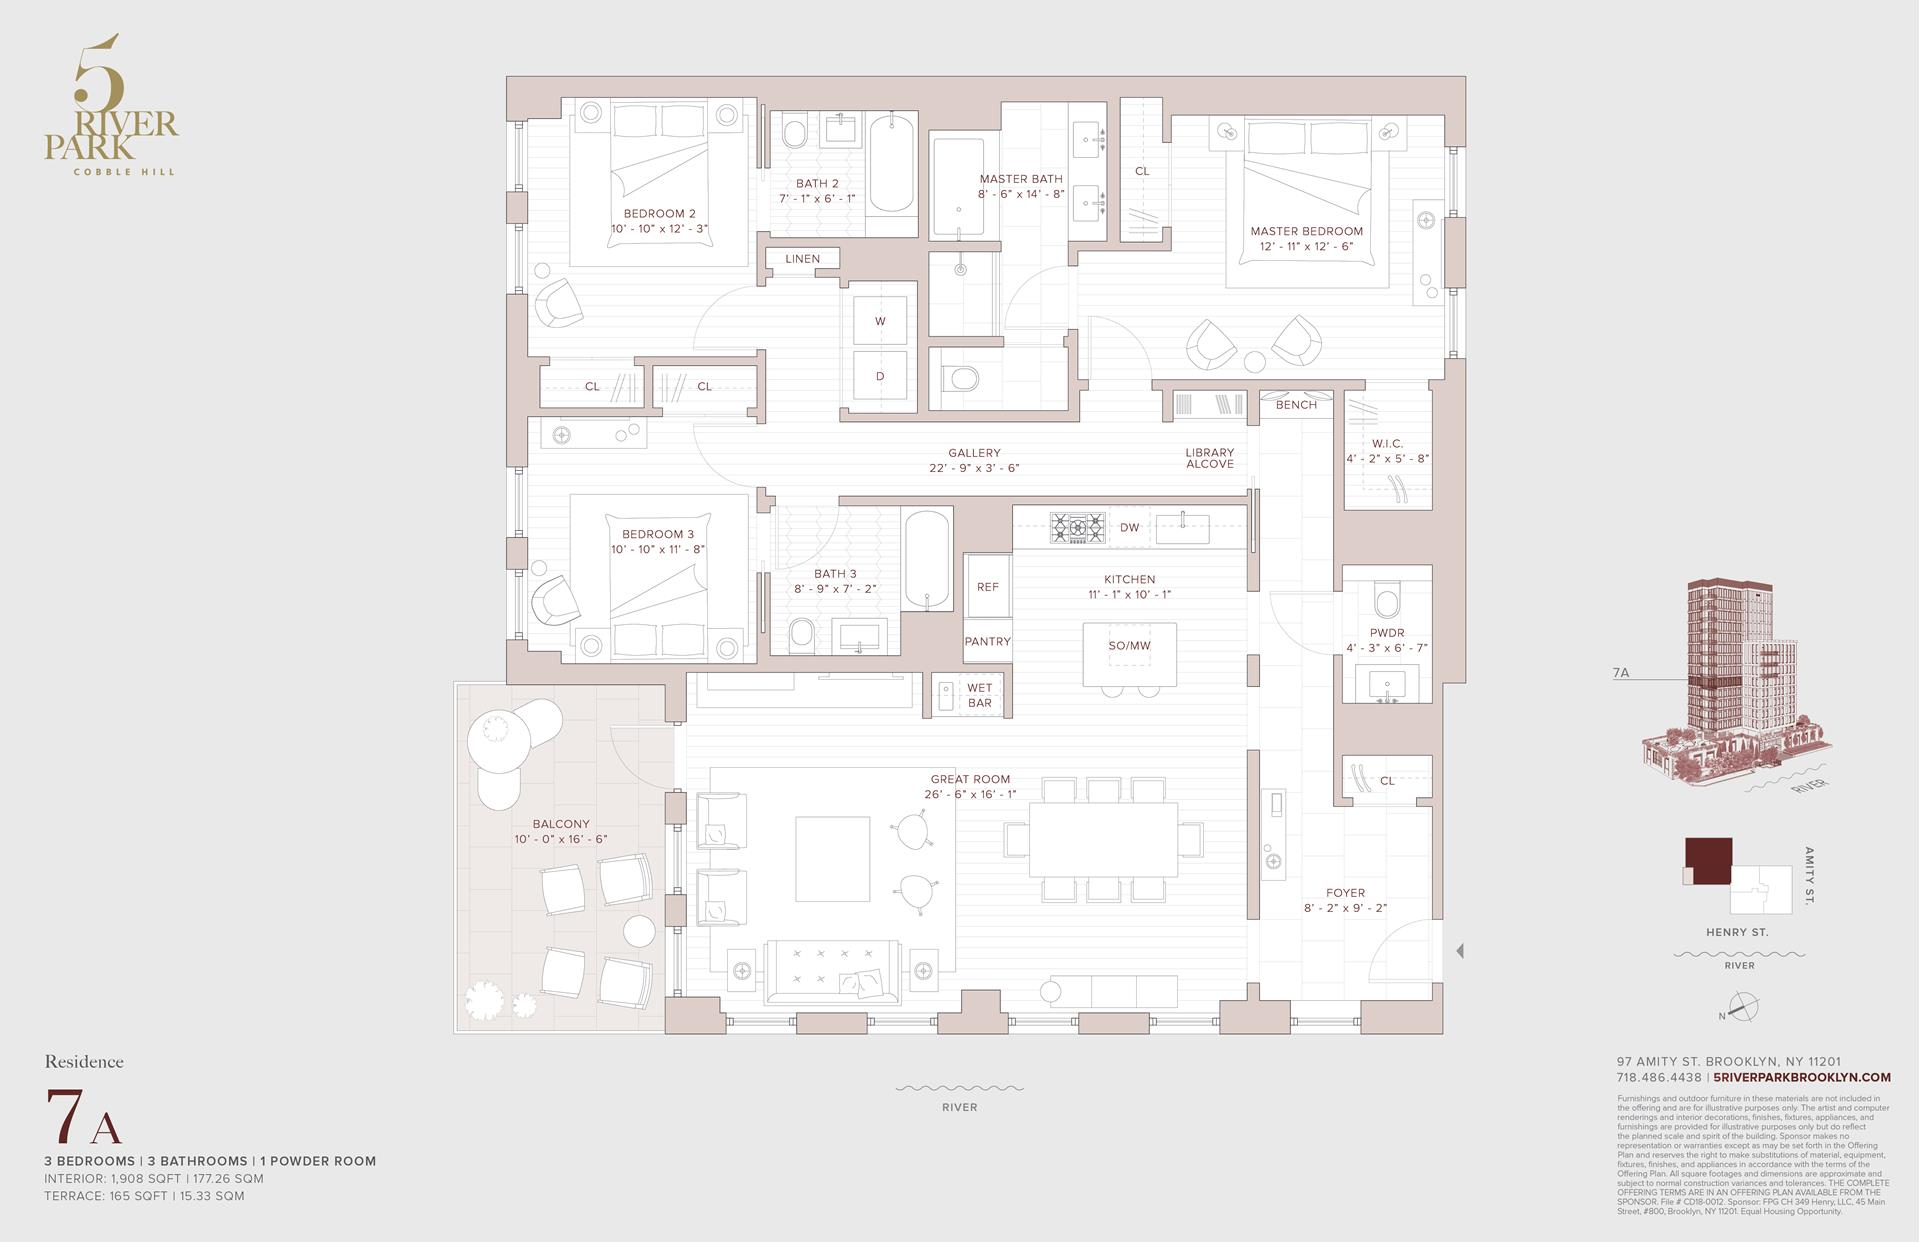 Floor plan of 5 River Park, 347 Henry St, 7A - Cobble Hill, New York